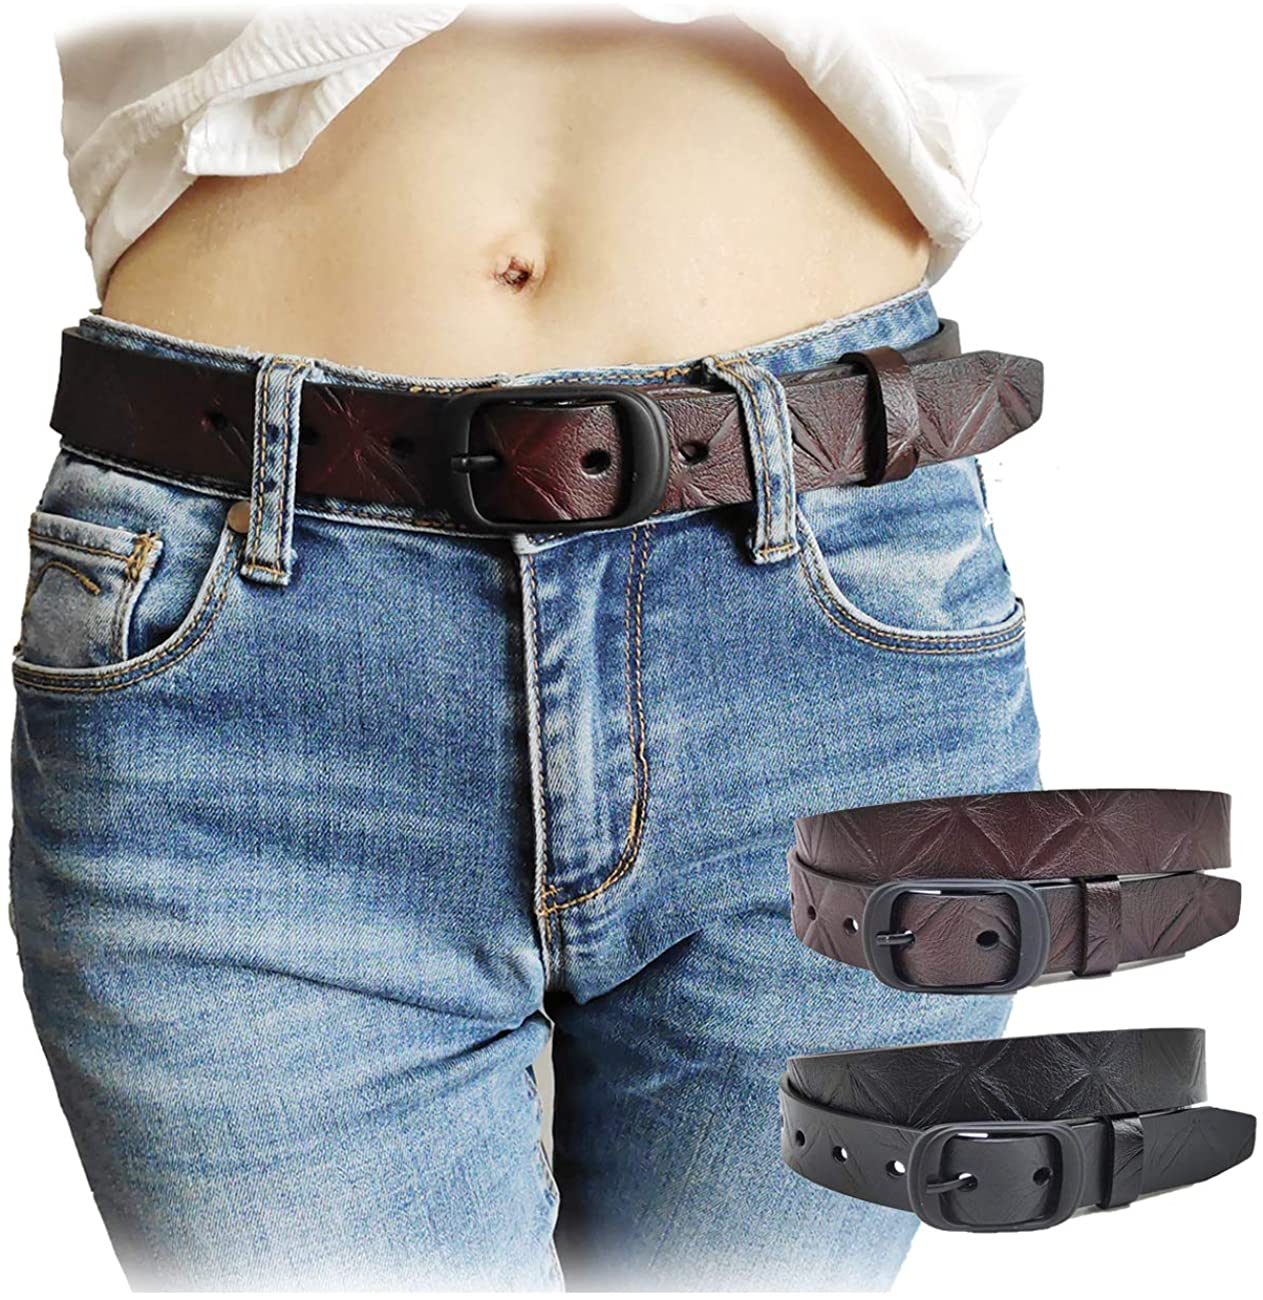 Hoanan Women Leather Belt for Jeans Pant Shorts Waist Belt with Pin Buckle